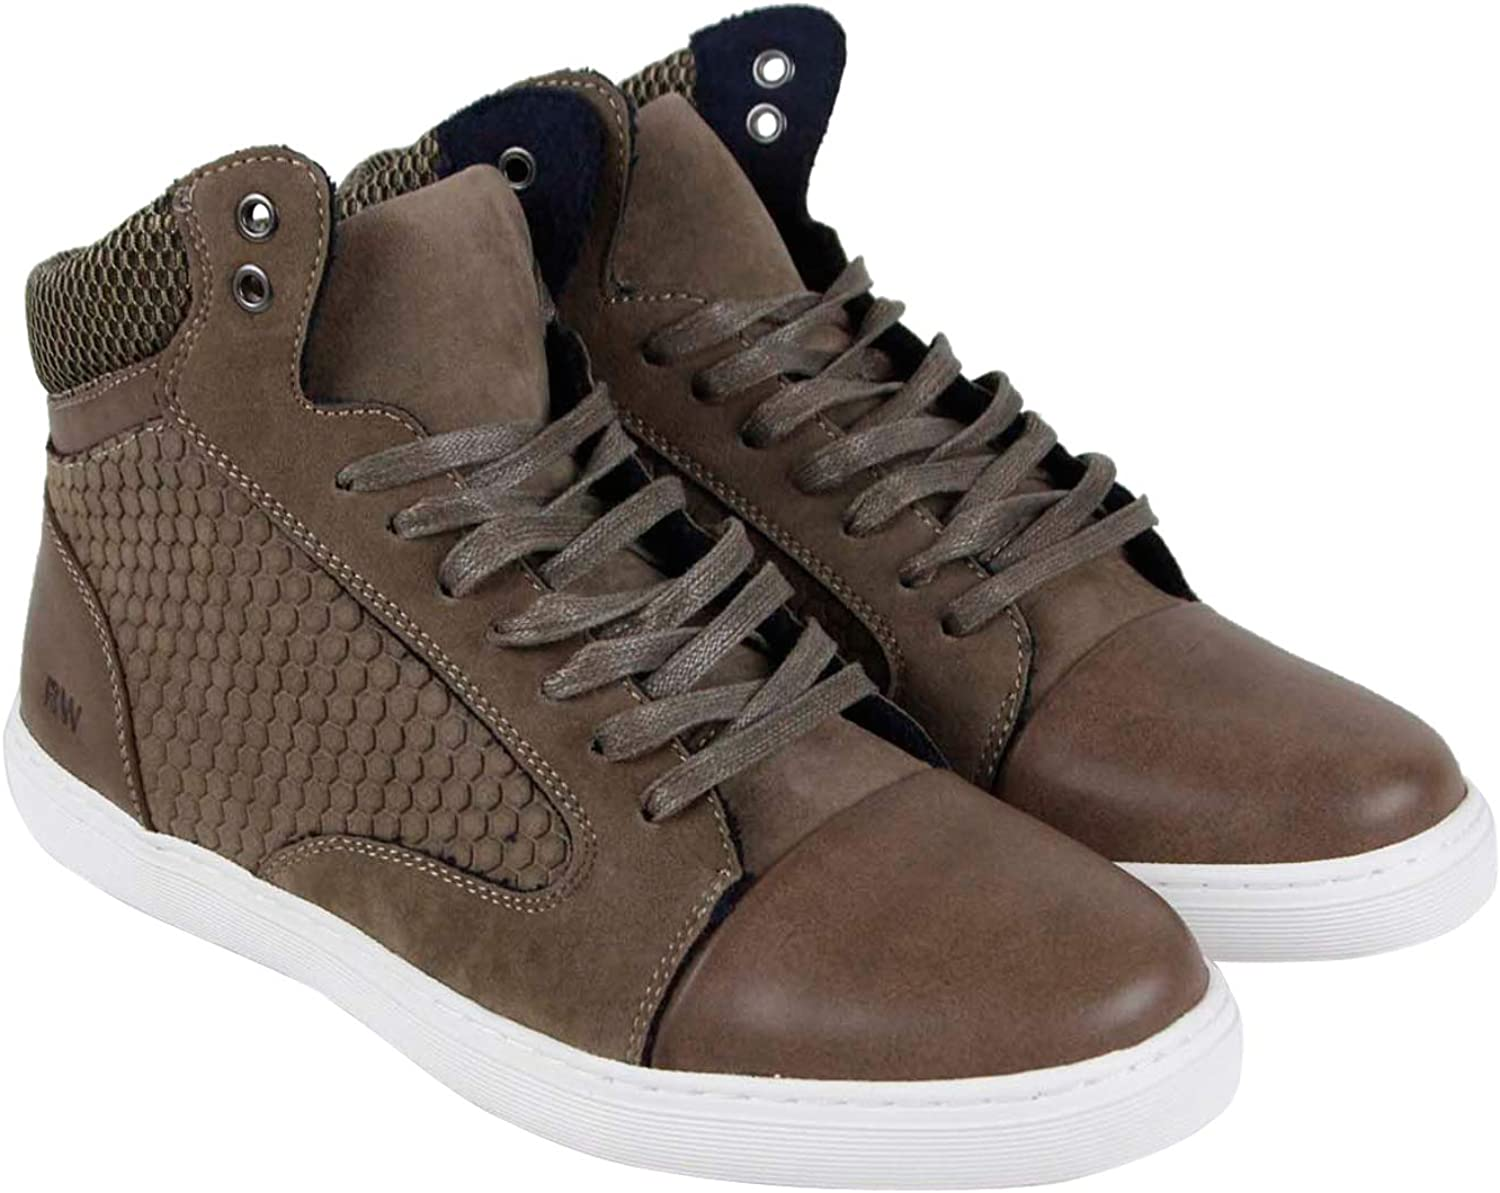 Robert Wayne Garroway Mens Brown Leather Suede High Top Sneakers shoes